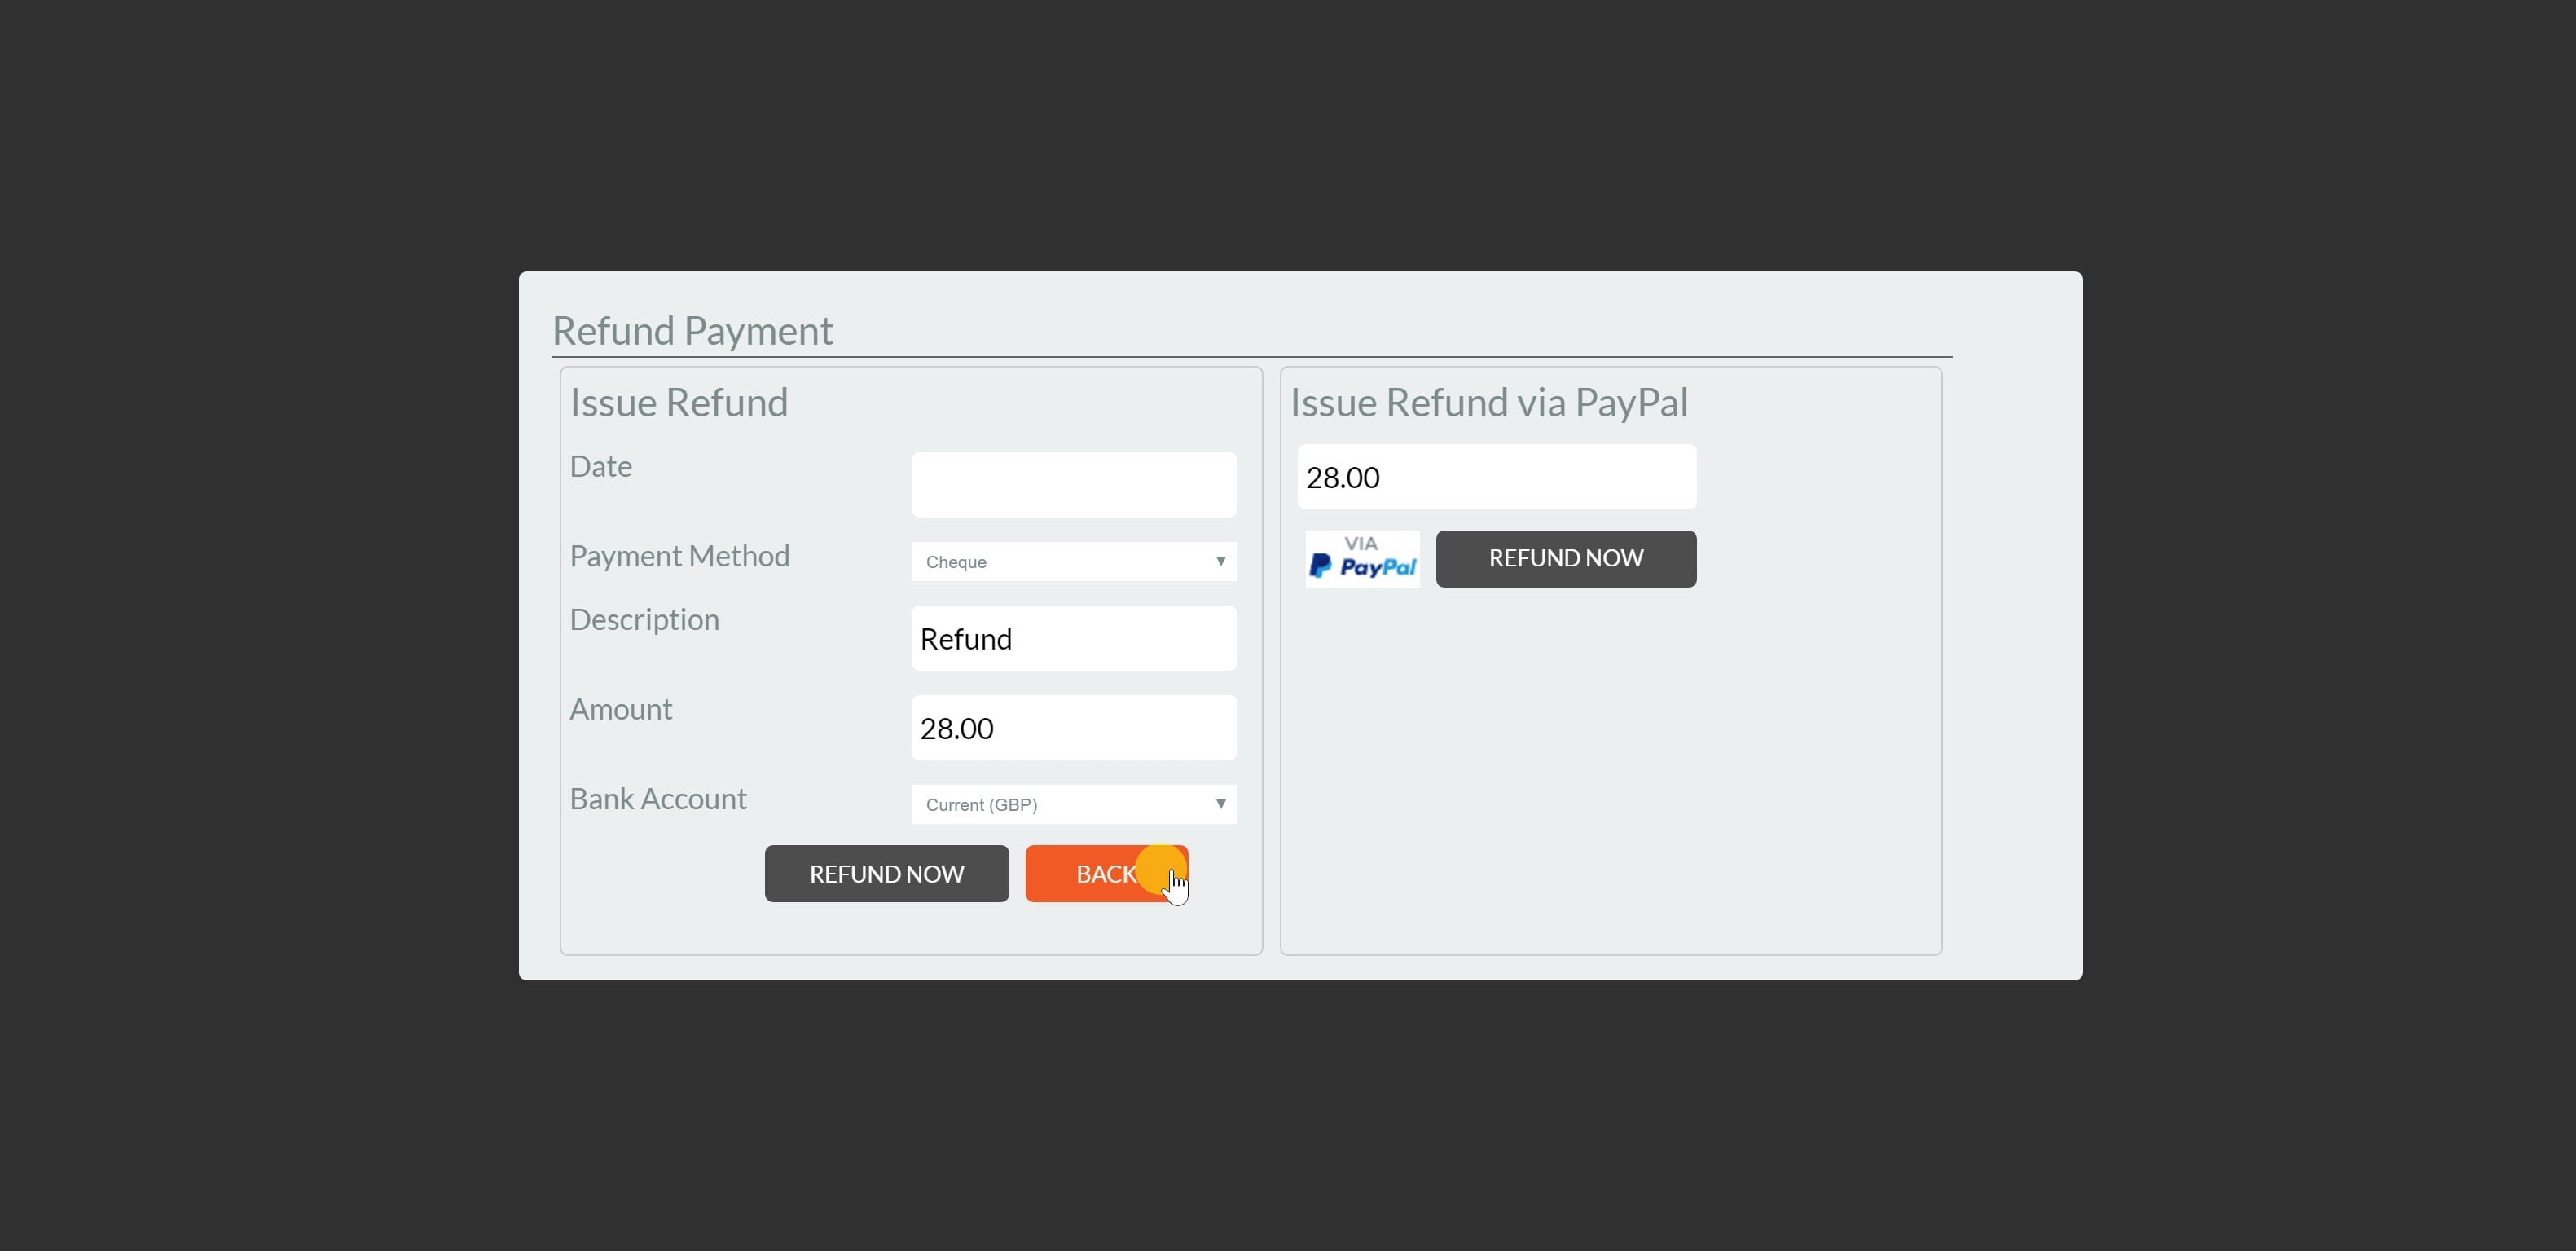 4. Enter the refund amount